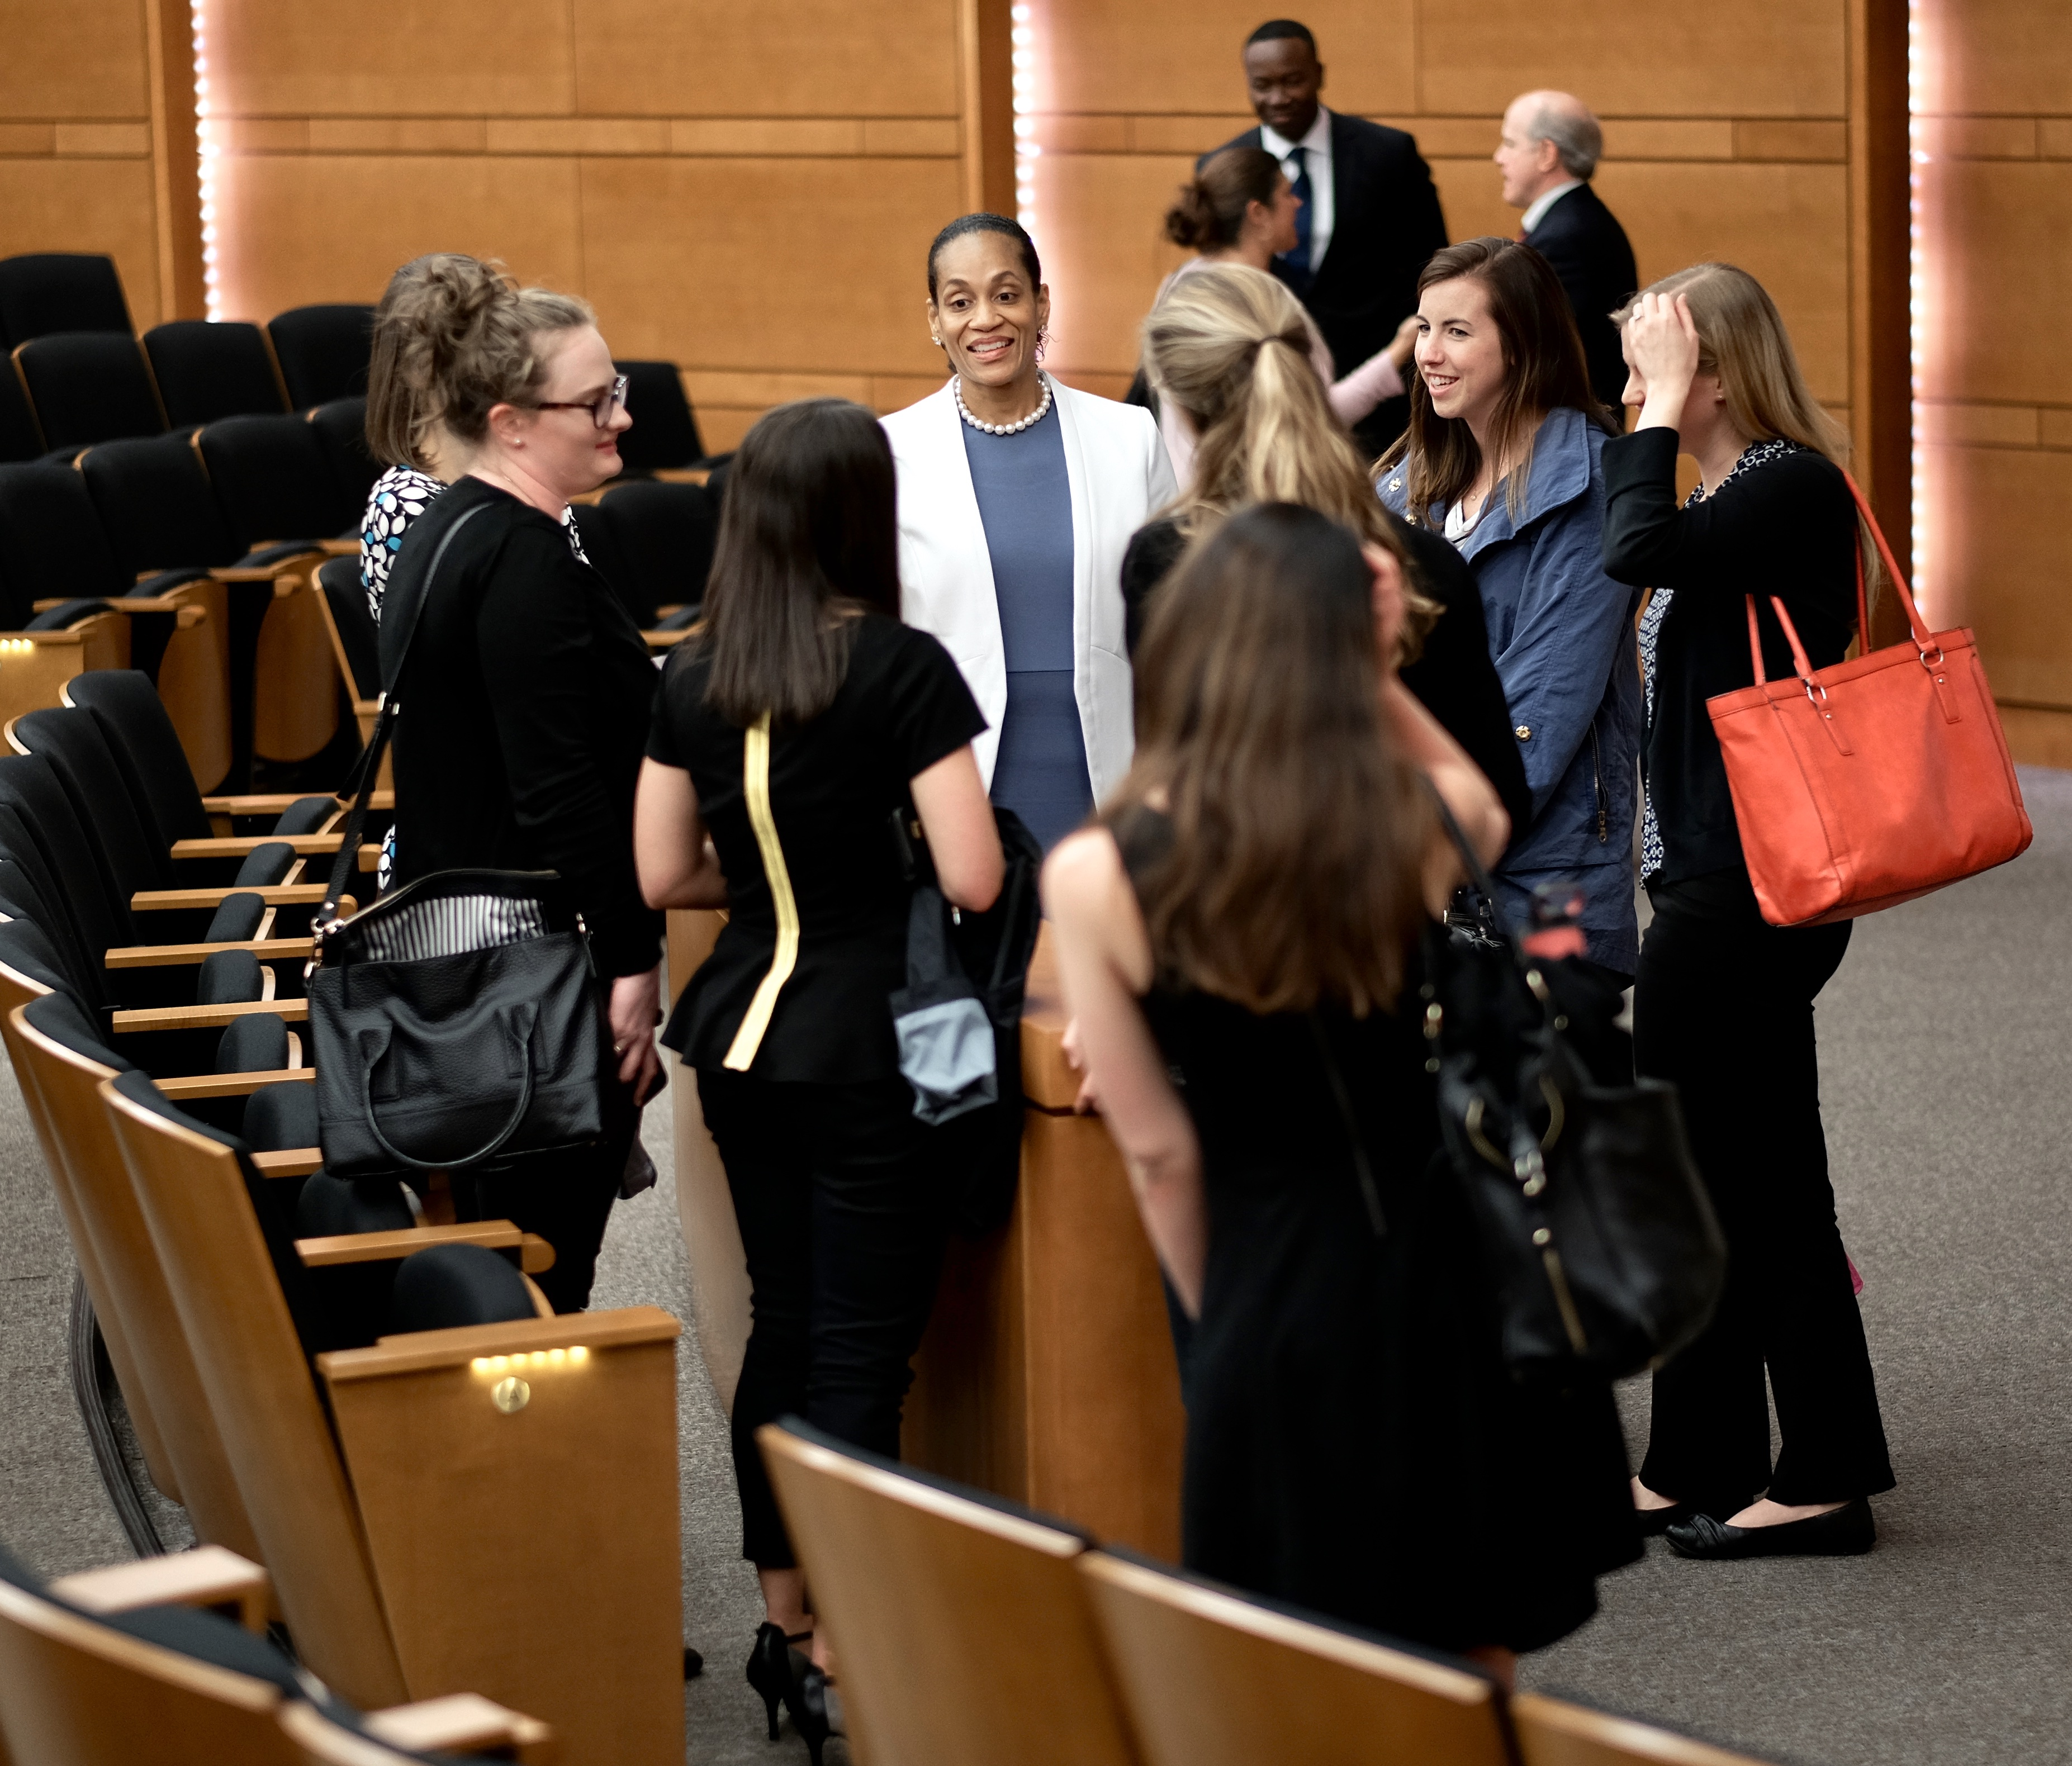 Wake Forest University School of Business held the MA Management ALP event in Broyhill Auditorium 5/5/16.